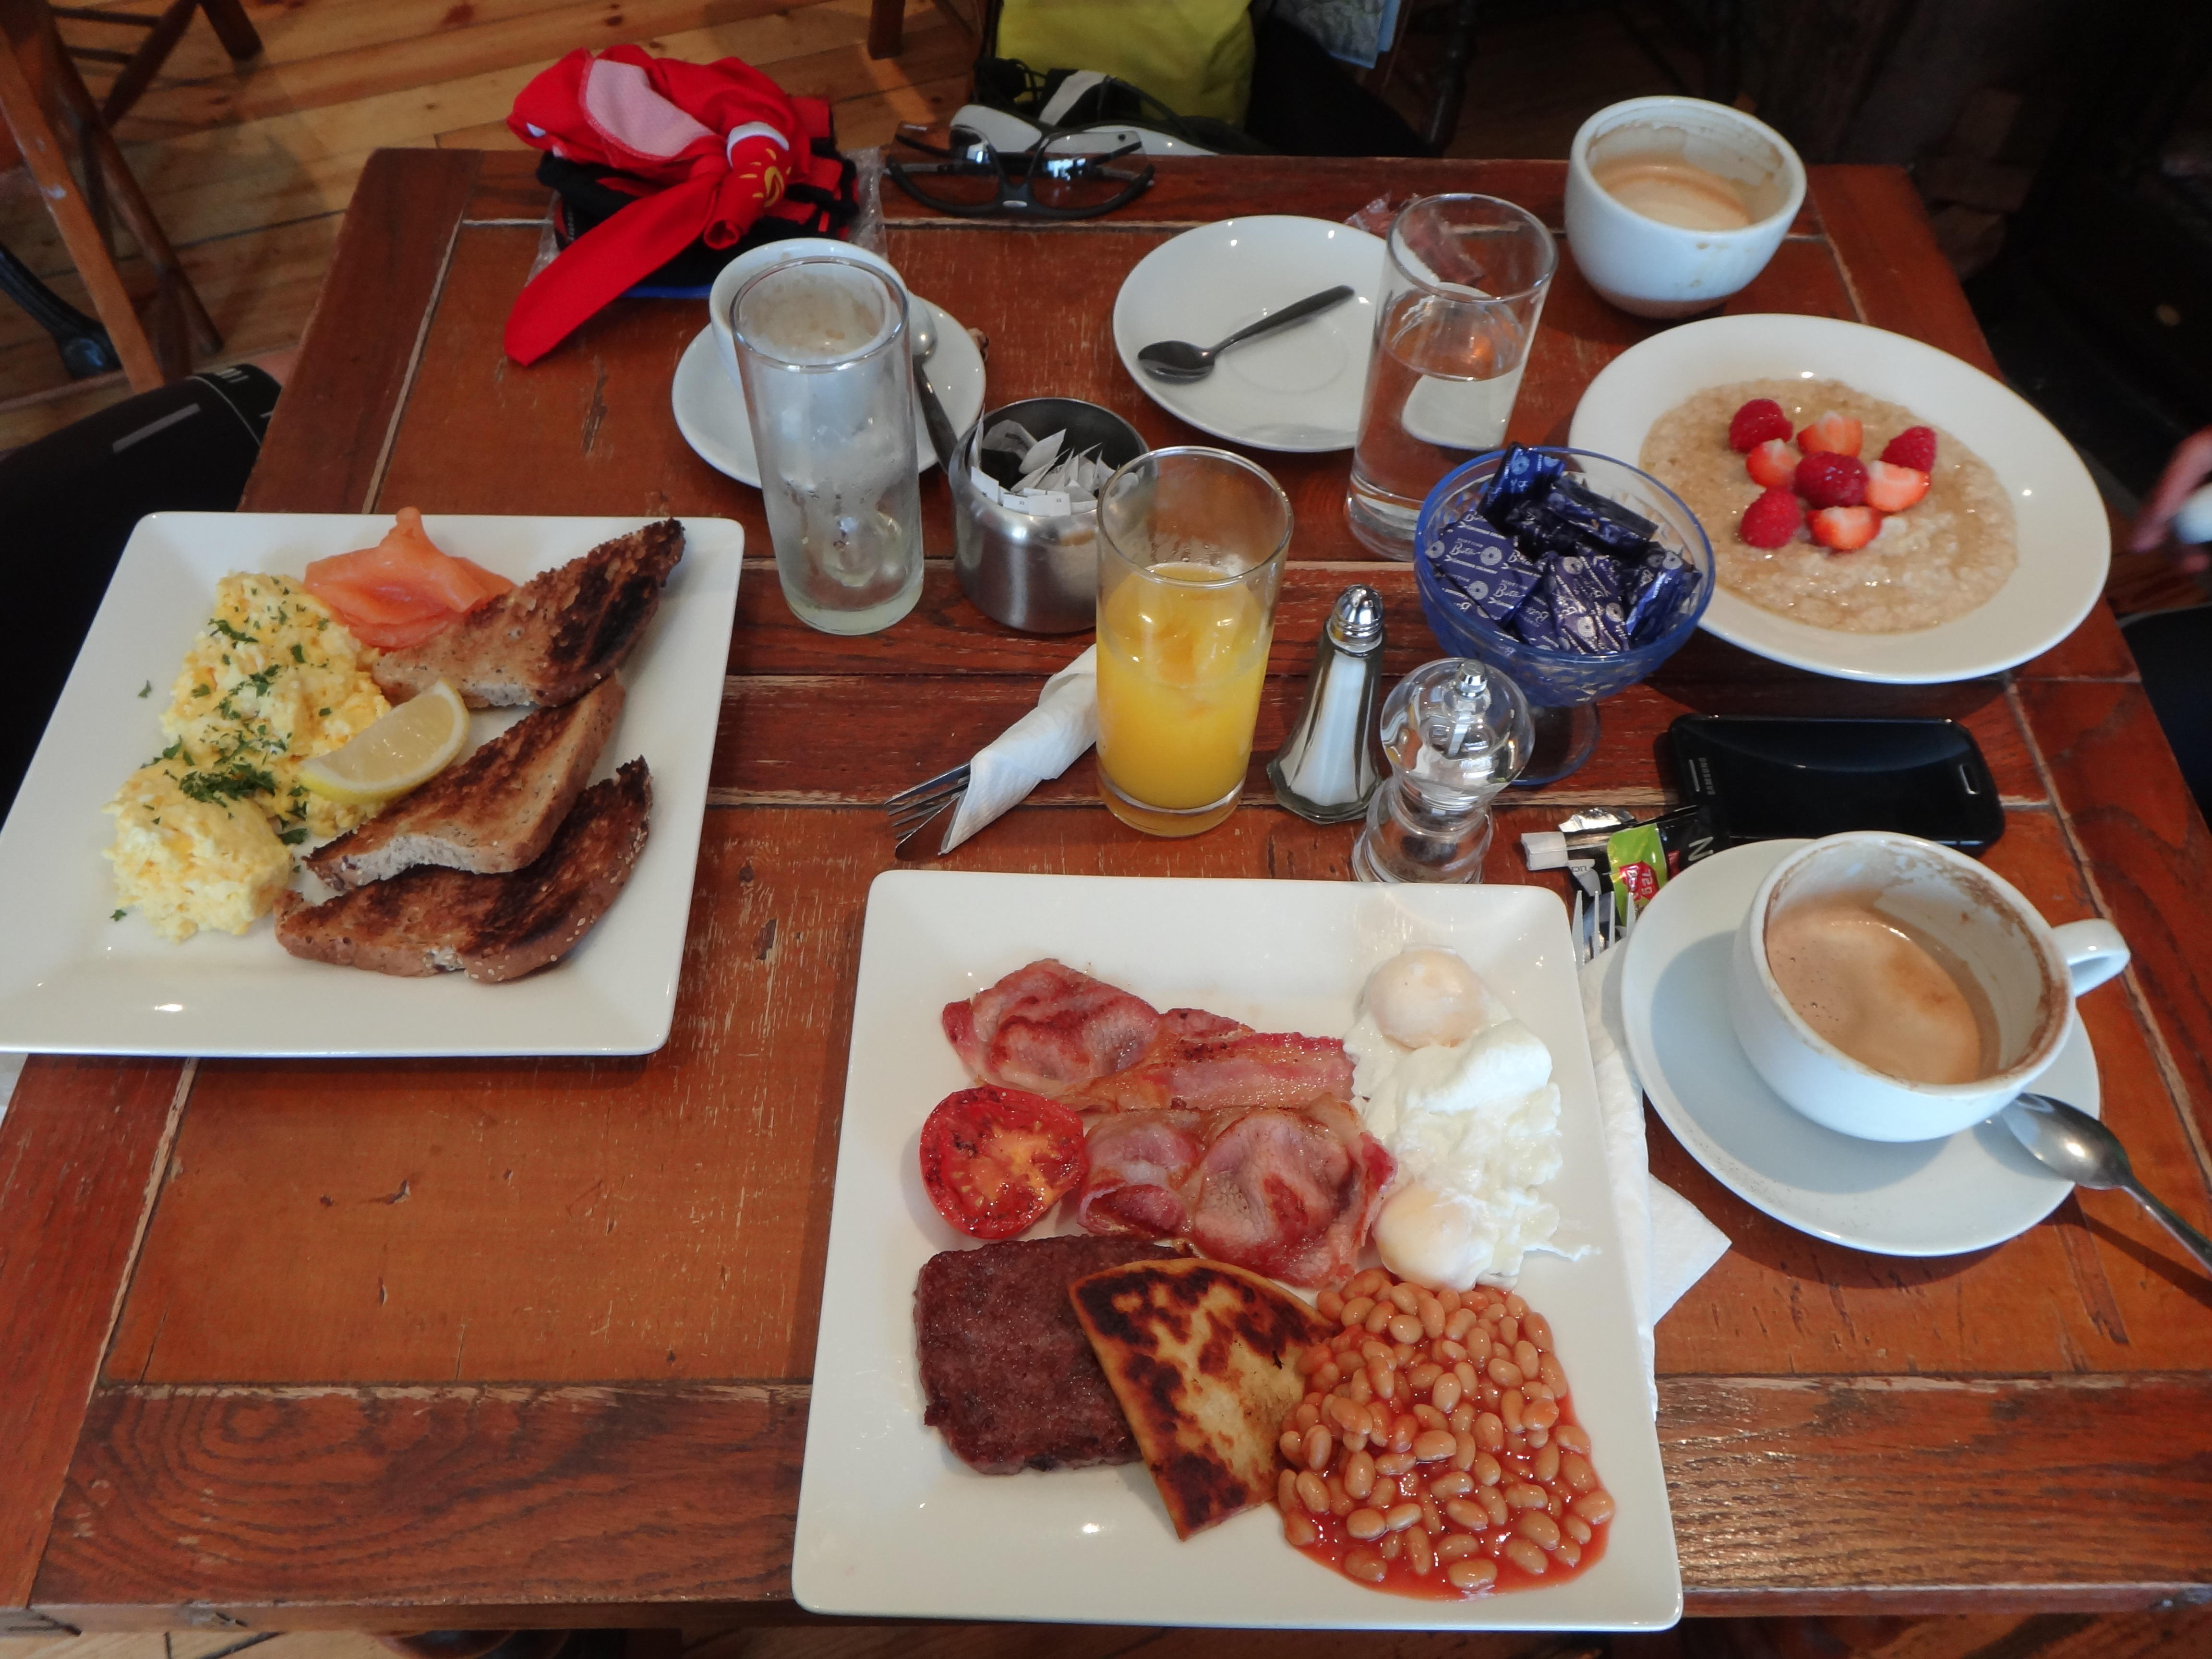 Our last breakfast on the road...